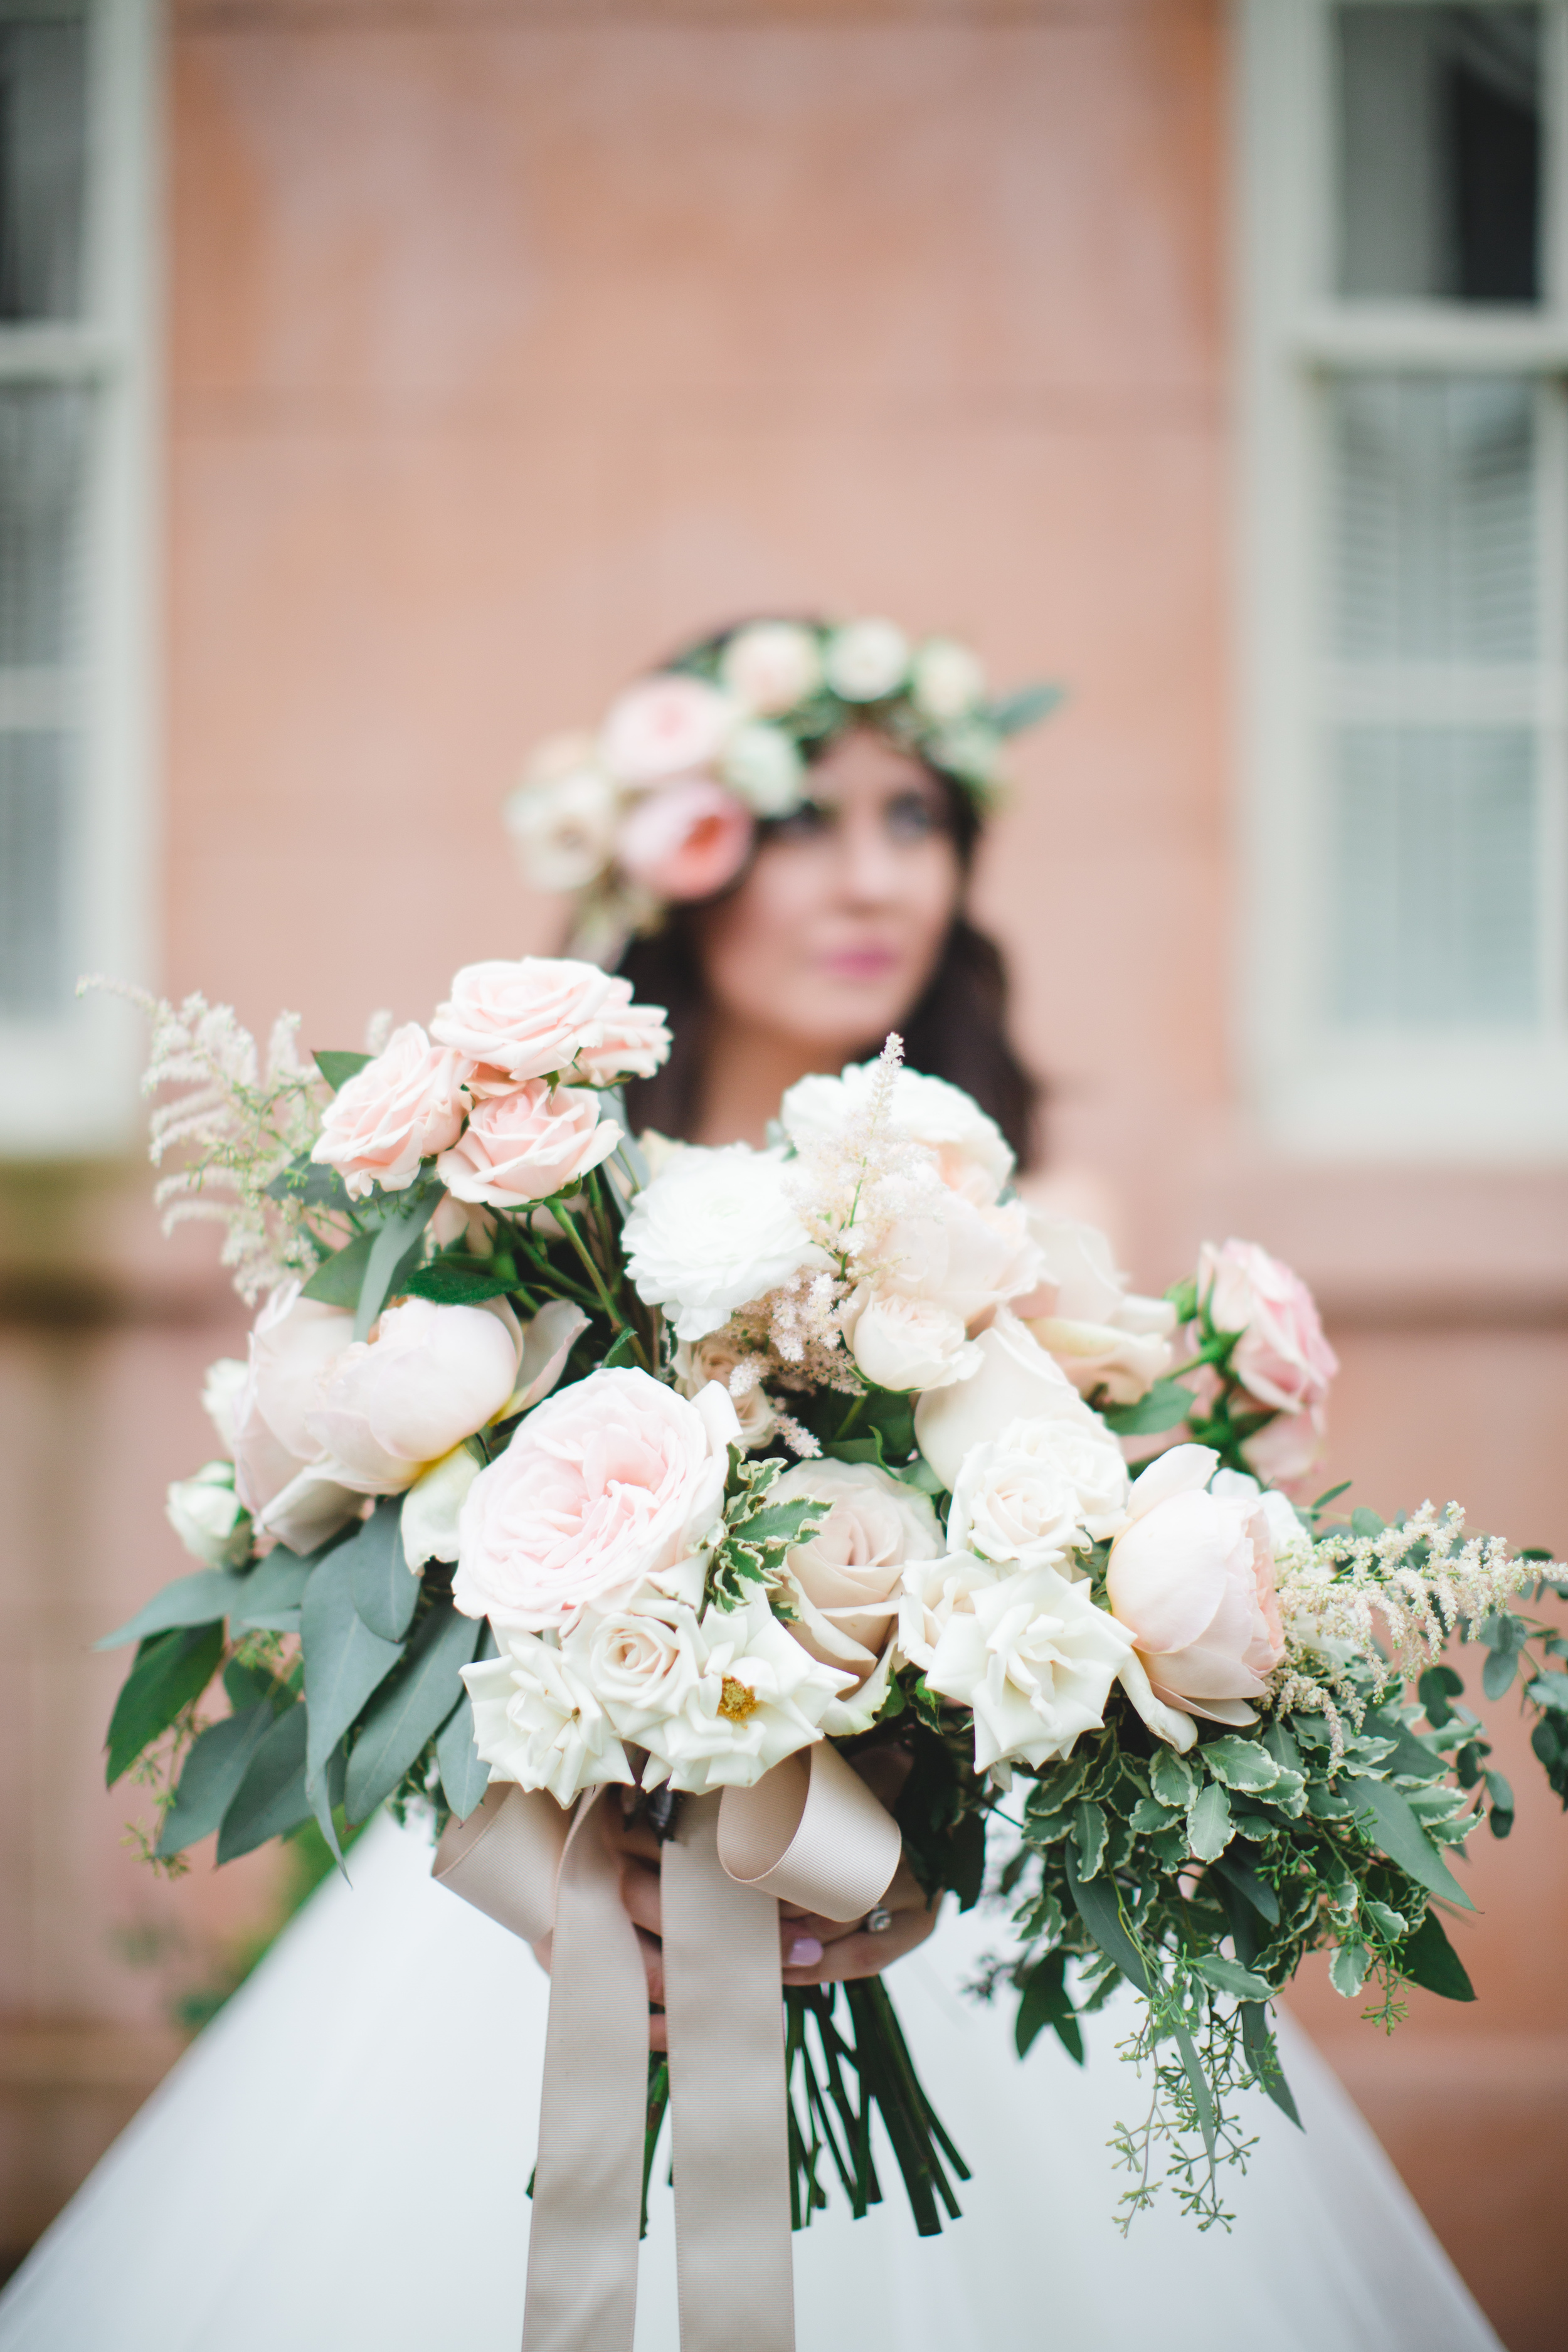 daniela-and-pedro-wedding-izzy-hudgins-photography-a-to-zinnias-whitfield-square-charles-h-morris-center-wedding-ivoyy-and-beau-bridal-boutique-dorie-hayley-paige-savannah-wedding-planner-savannah-bridal-boutique-savannah-weddings-13.jpg